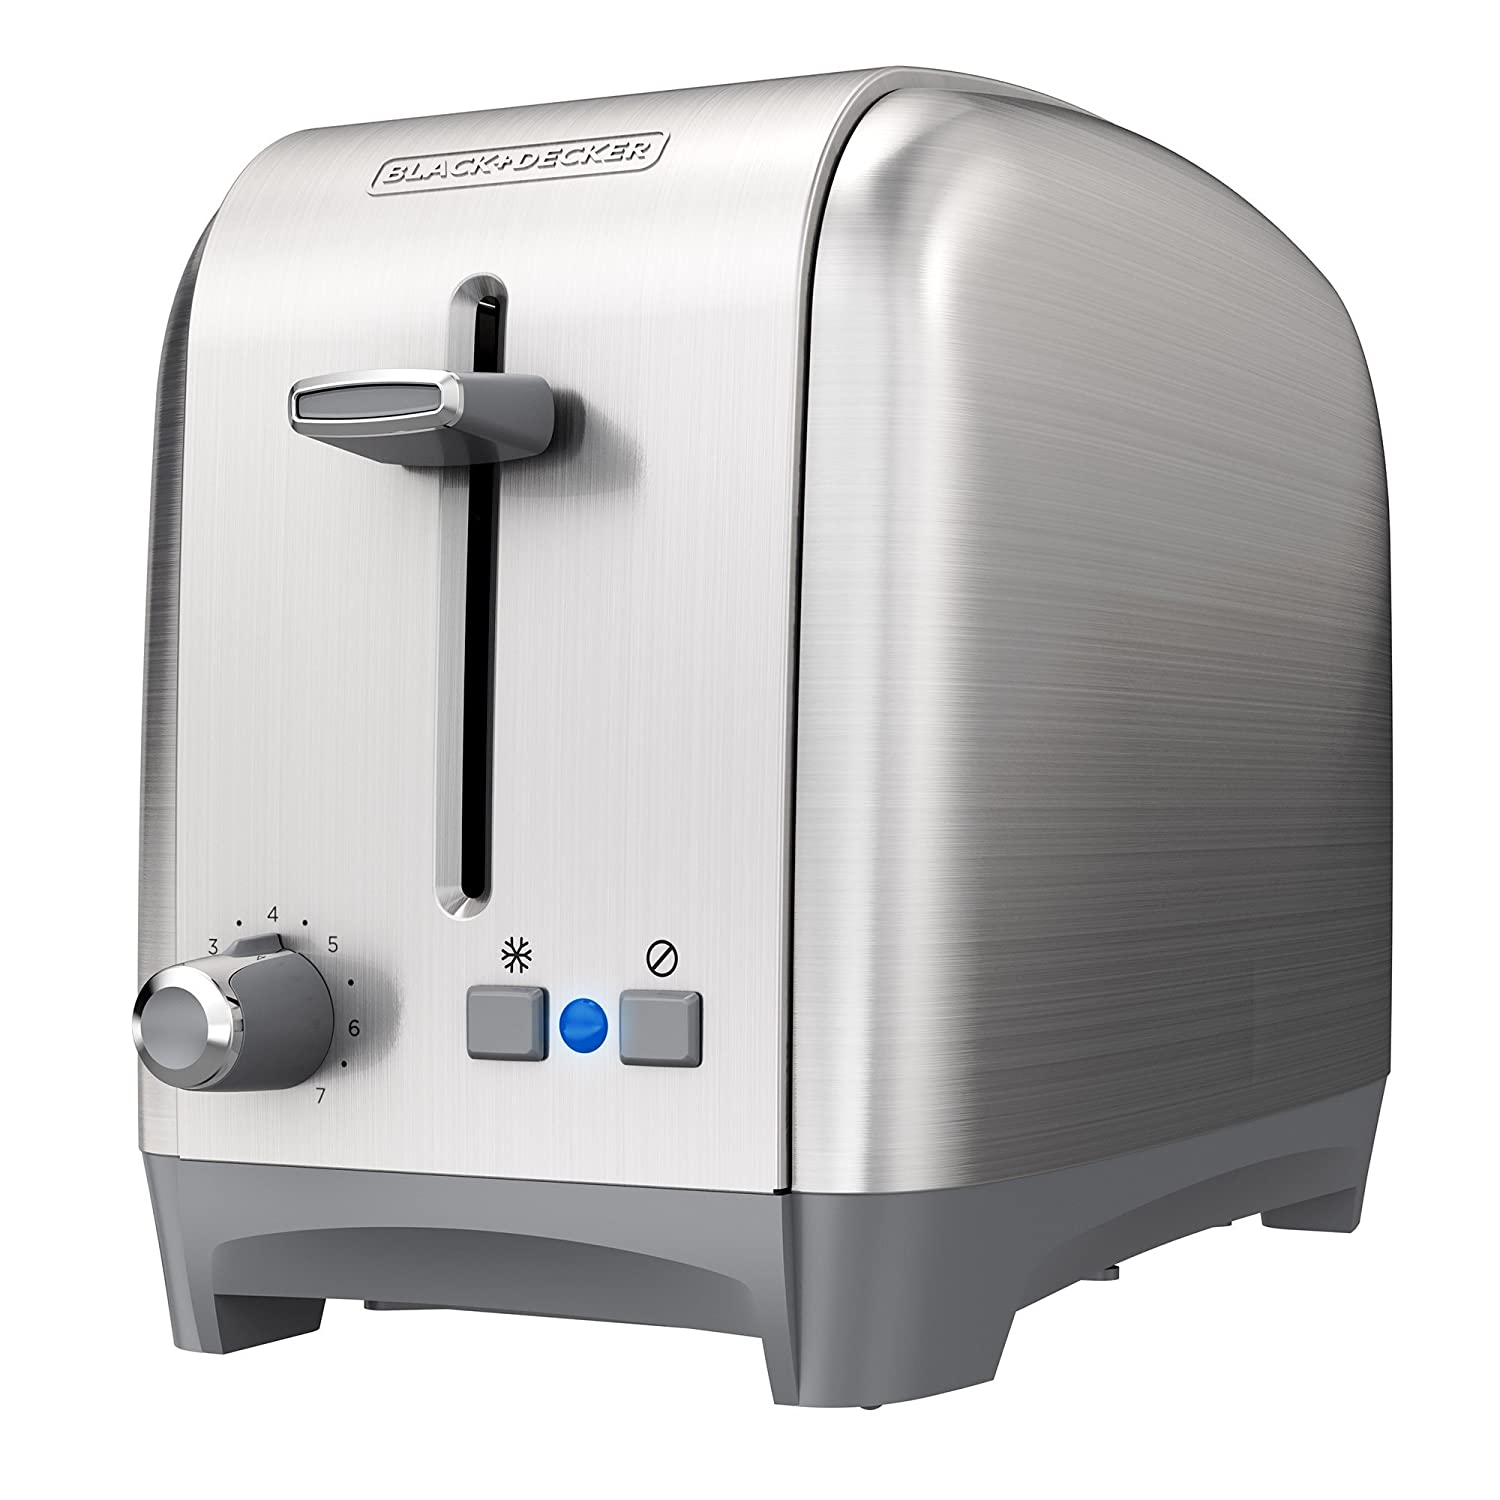 BLACK+DECKER 2-Slice Extra Wide Slot Toaster, Classic, Stainless Steel, TR2400SD (Renewed)